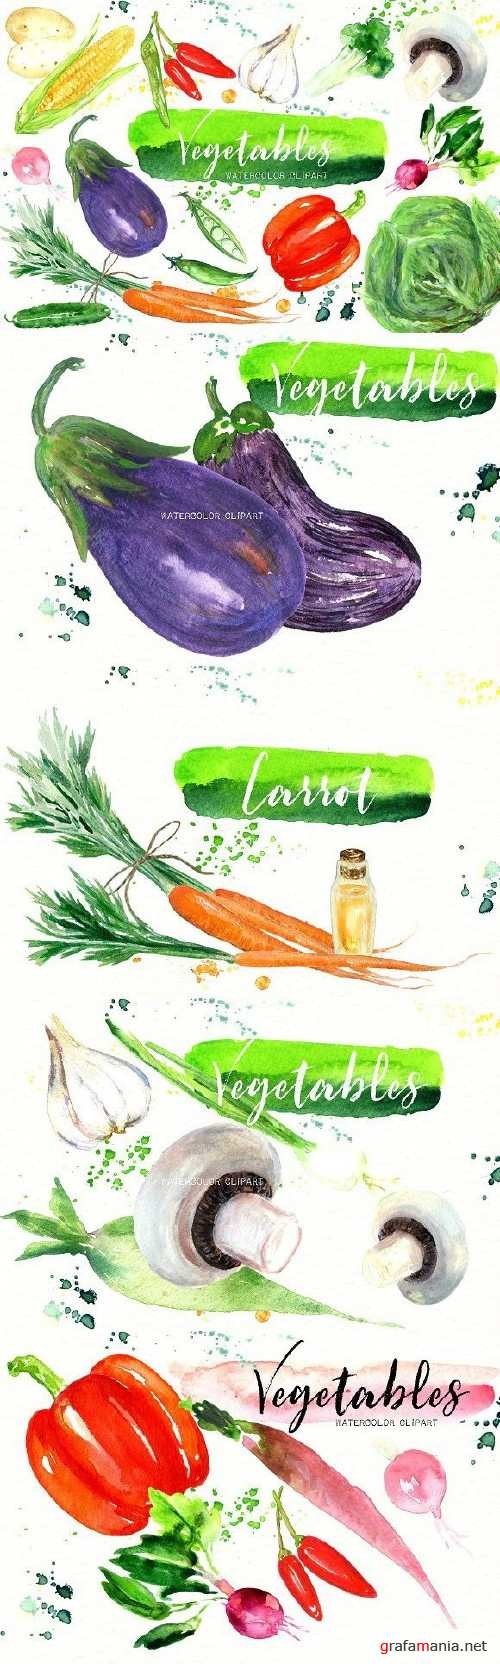 Vegetables Watercolor clipart 1739181